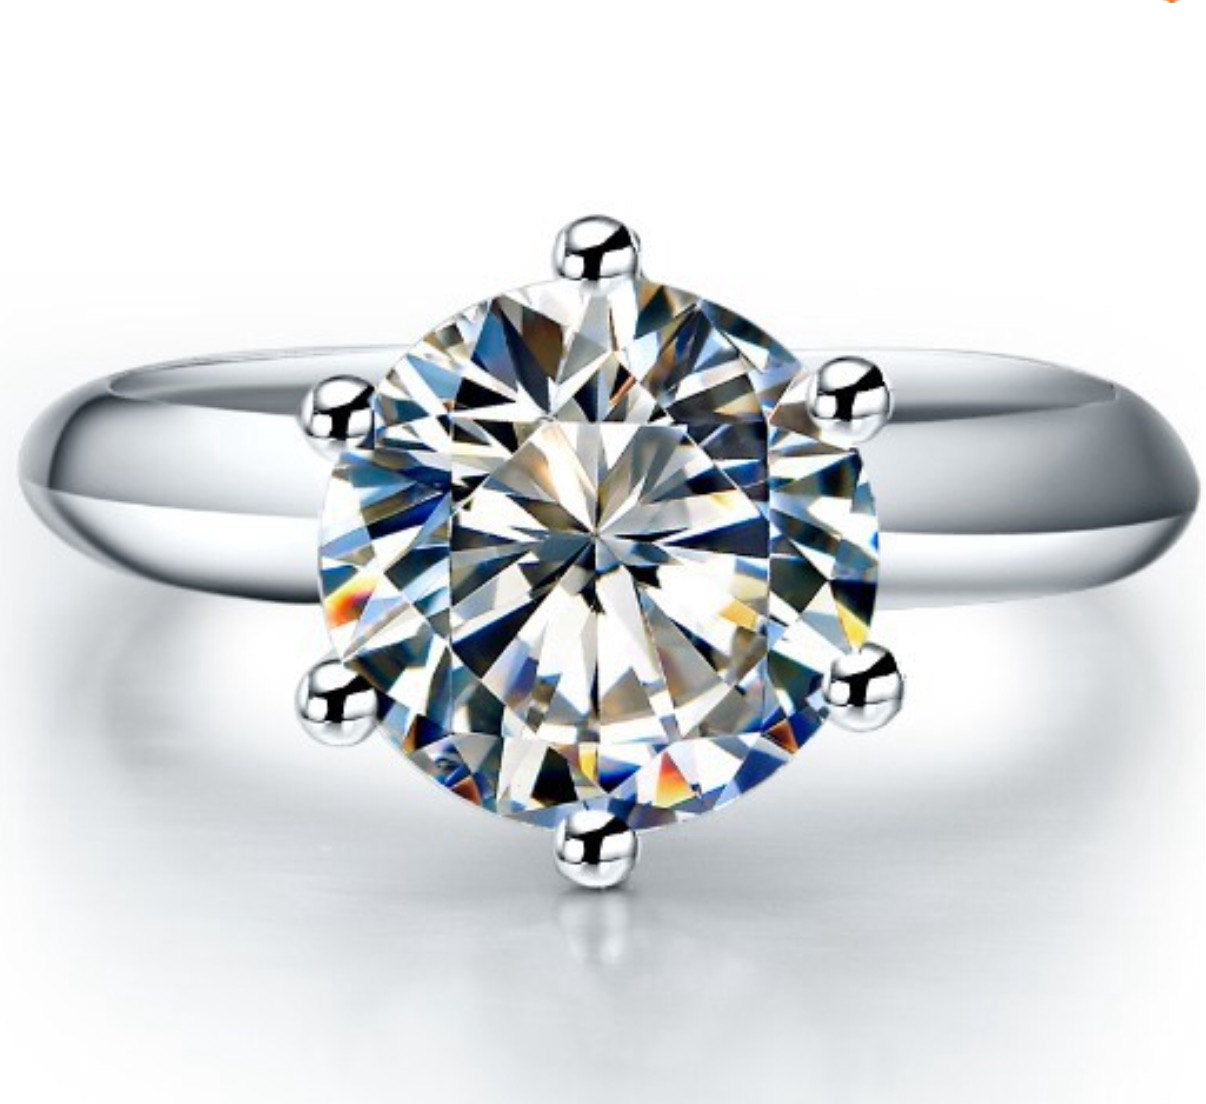 3 Carat classic solitaire simulated diamond promise engagement ring for women online Melbourne